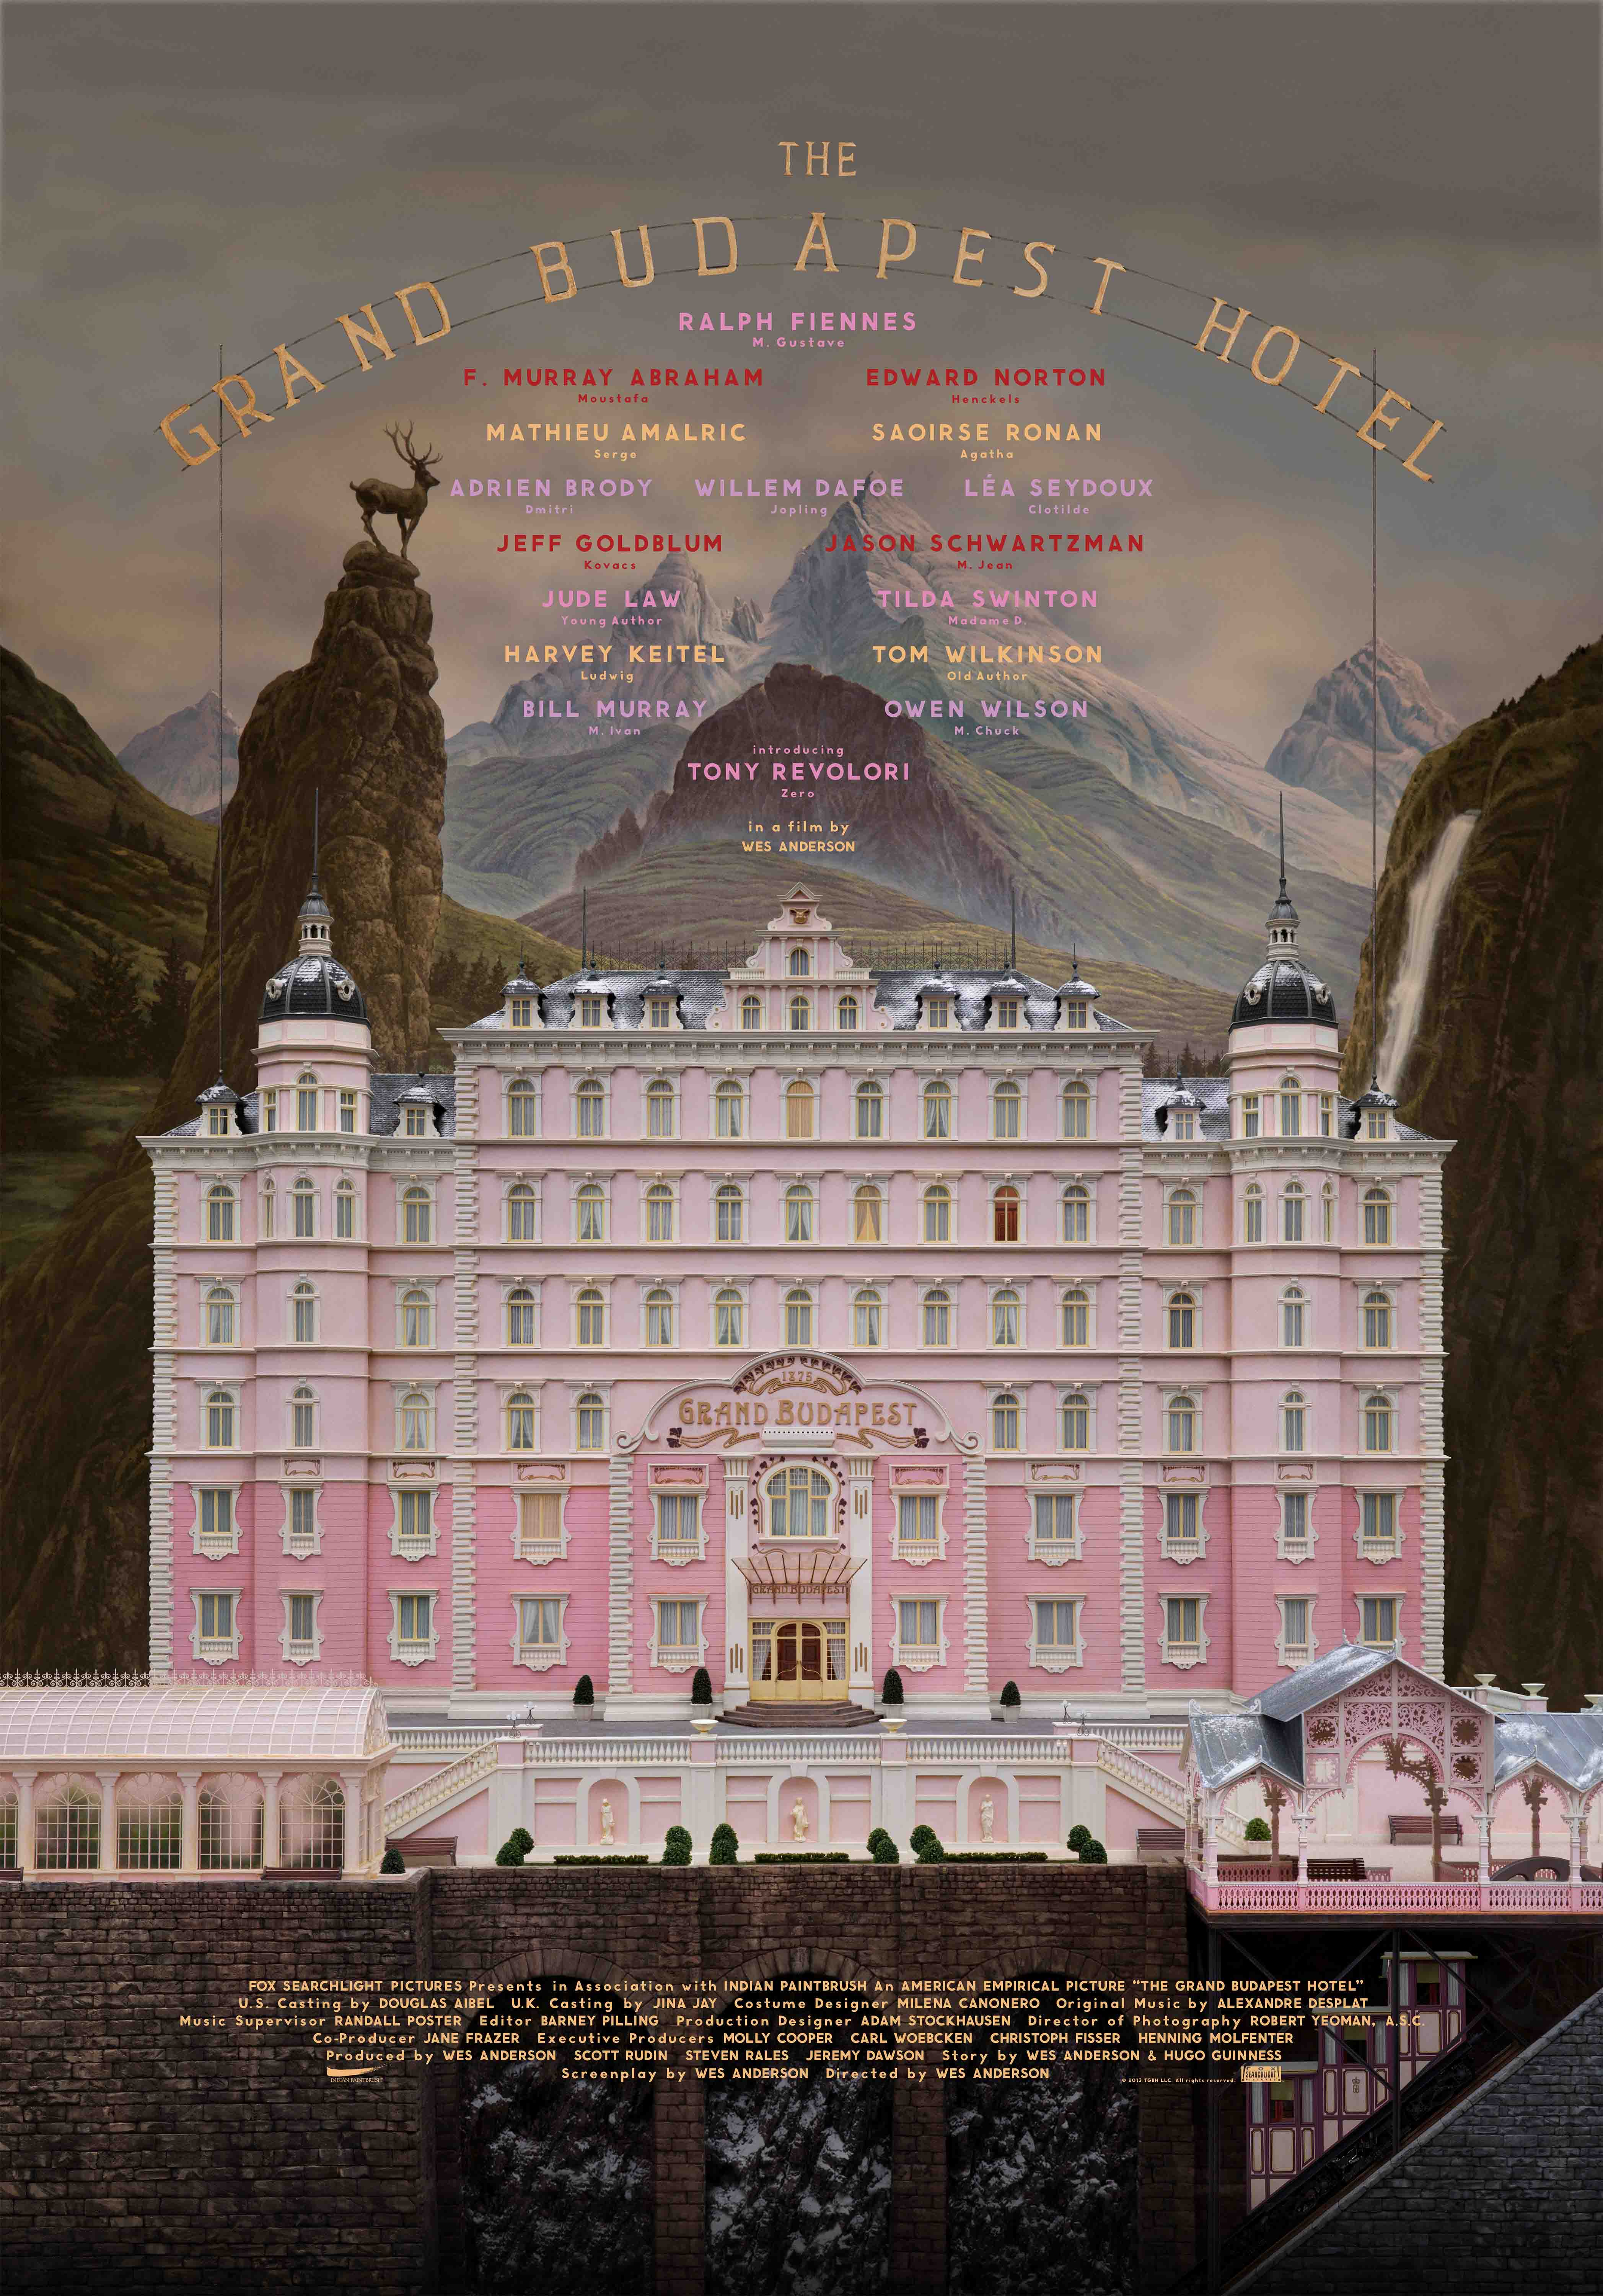 M2014010CIM 布达佩斯大酒店the-grand-budapest-hotel_1998a1ba.jpg